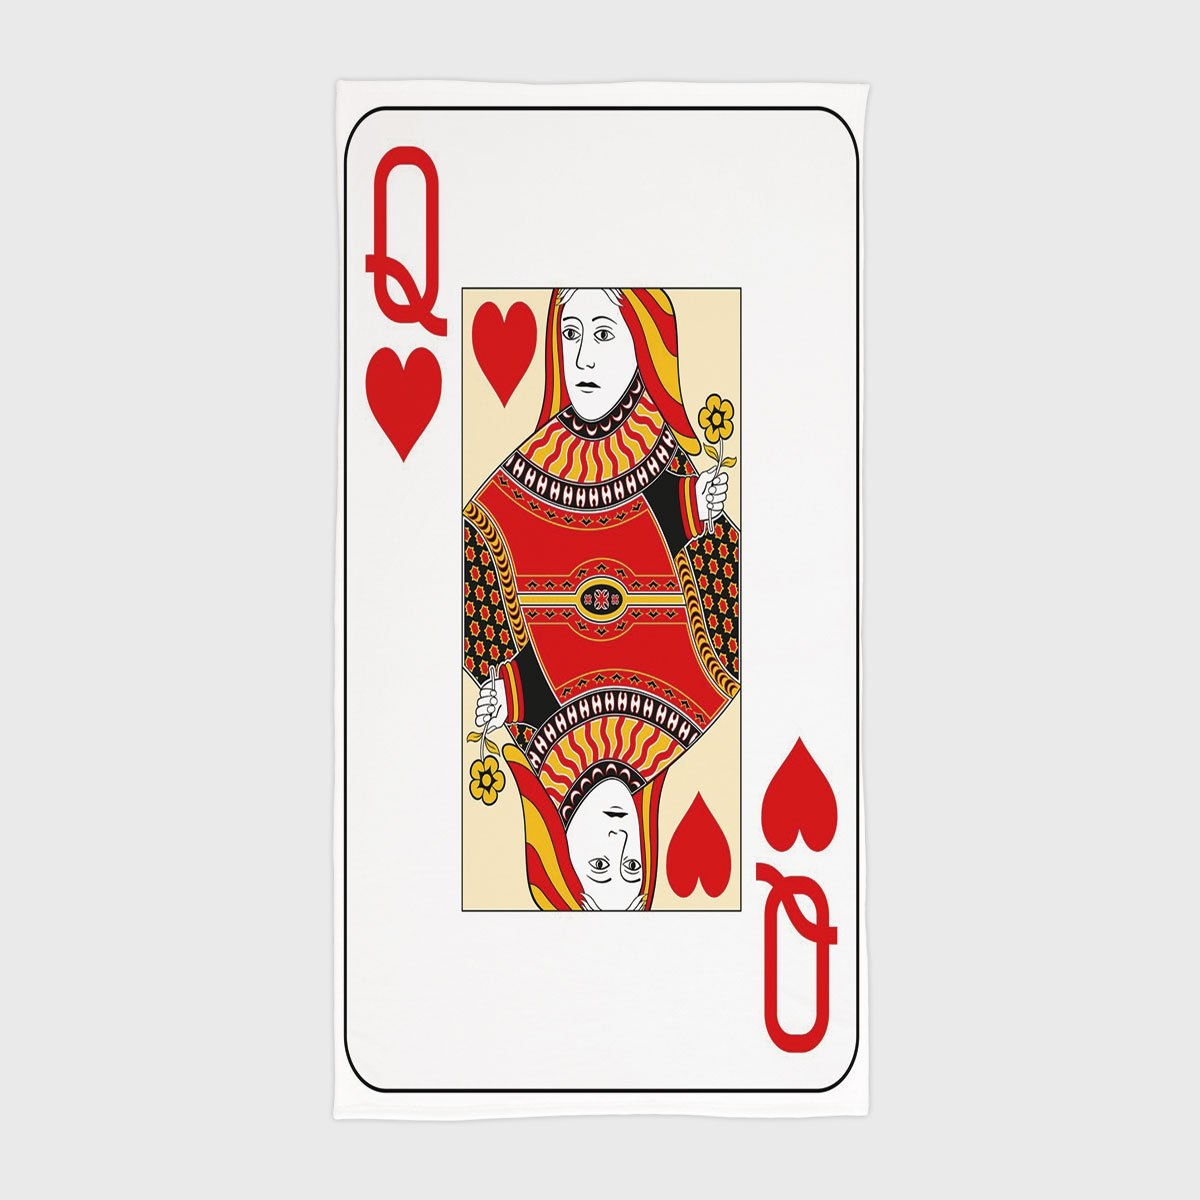 One Side Printing Hotel SPA Beach Pool Bath Hand Towel,Queen Queen of Hearts Playing Card Casino Decor Gambling Game Poker Blackjack Deck Red Yellow White,for Kids Teens and Adults